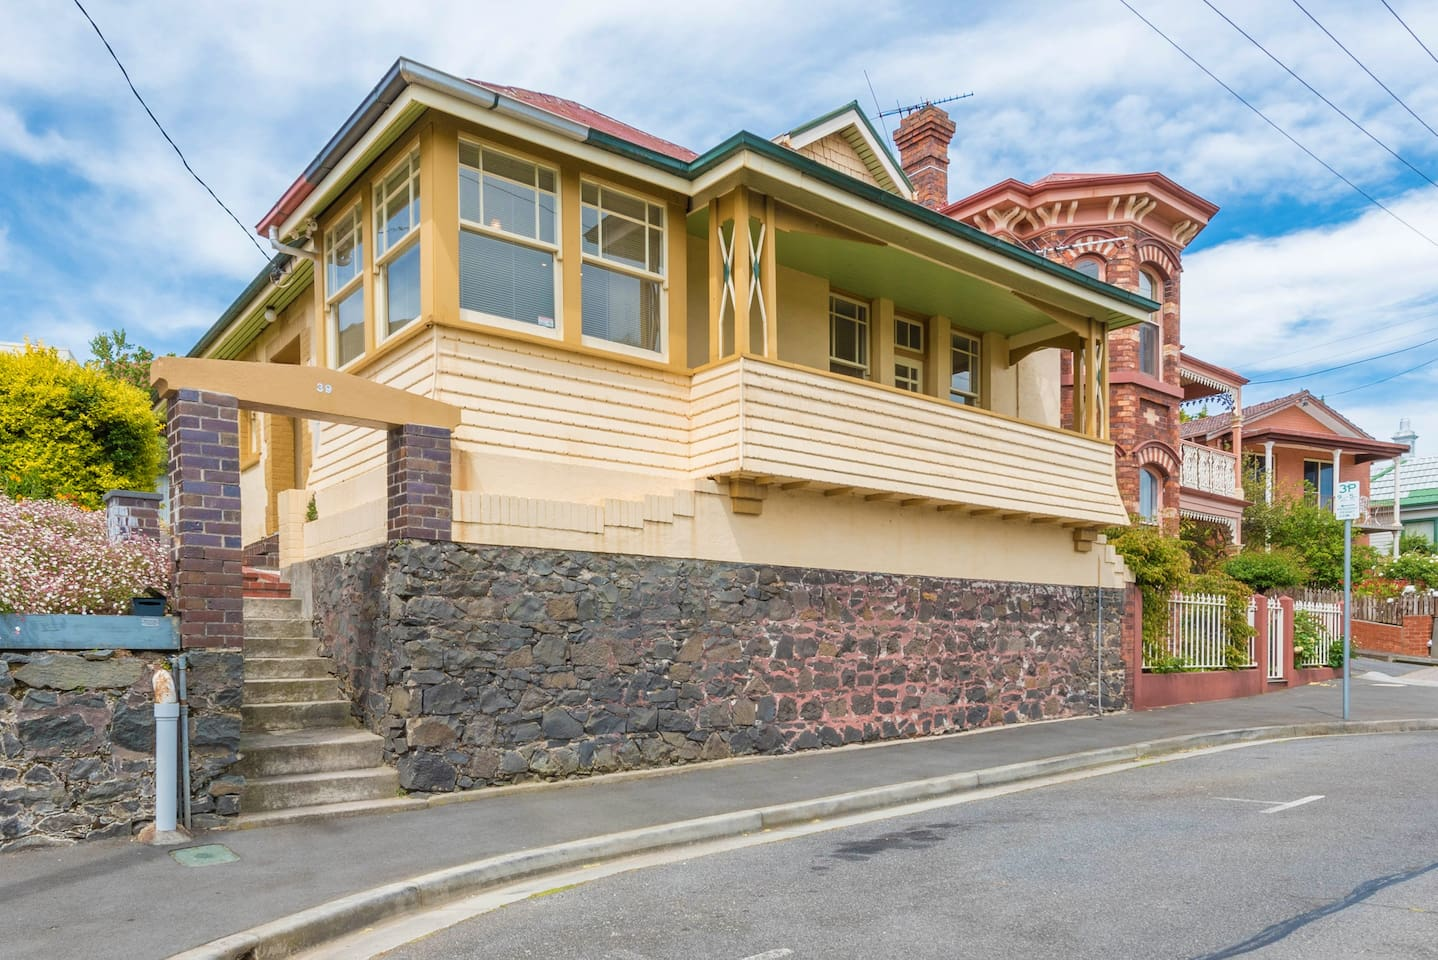 Welman Cottage is a classic 1920s property